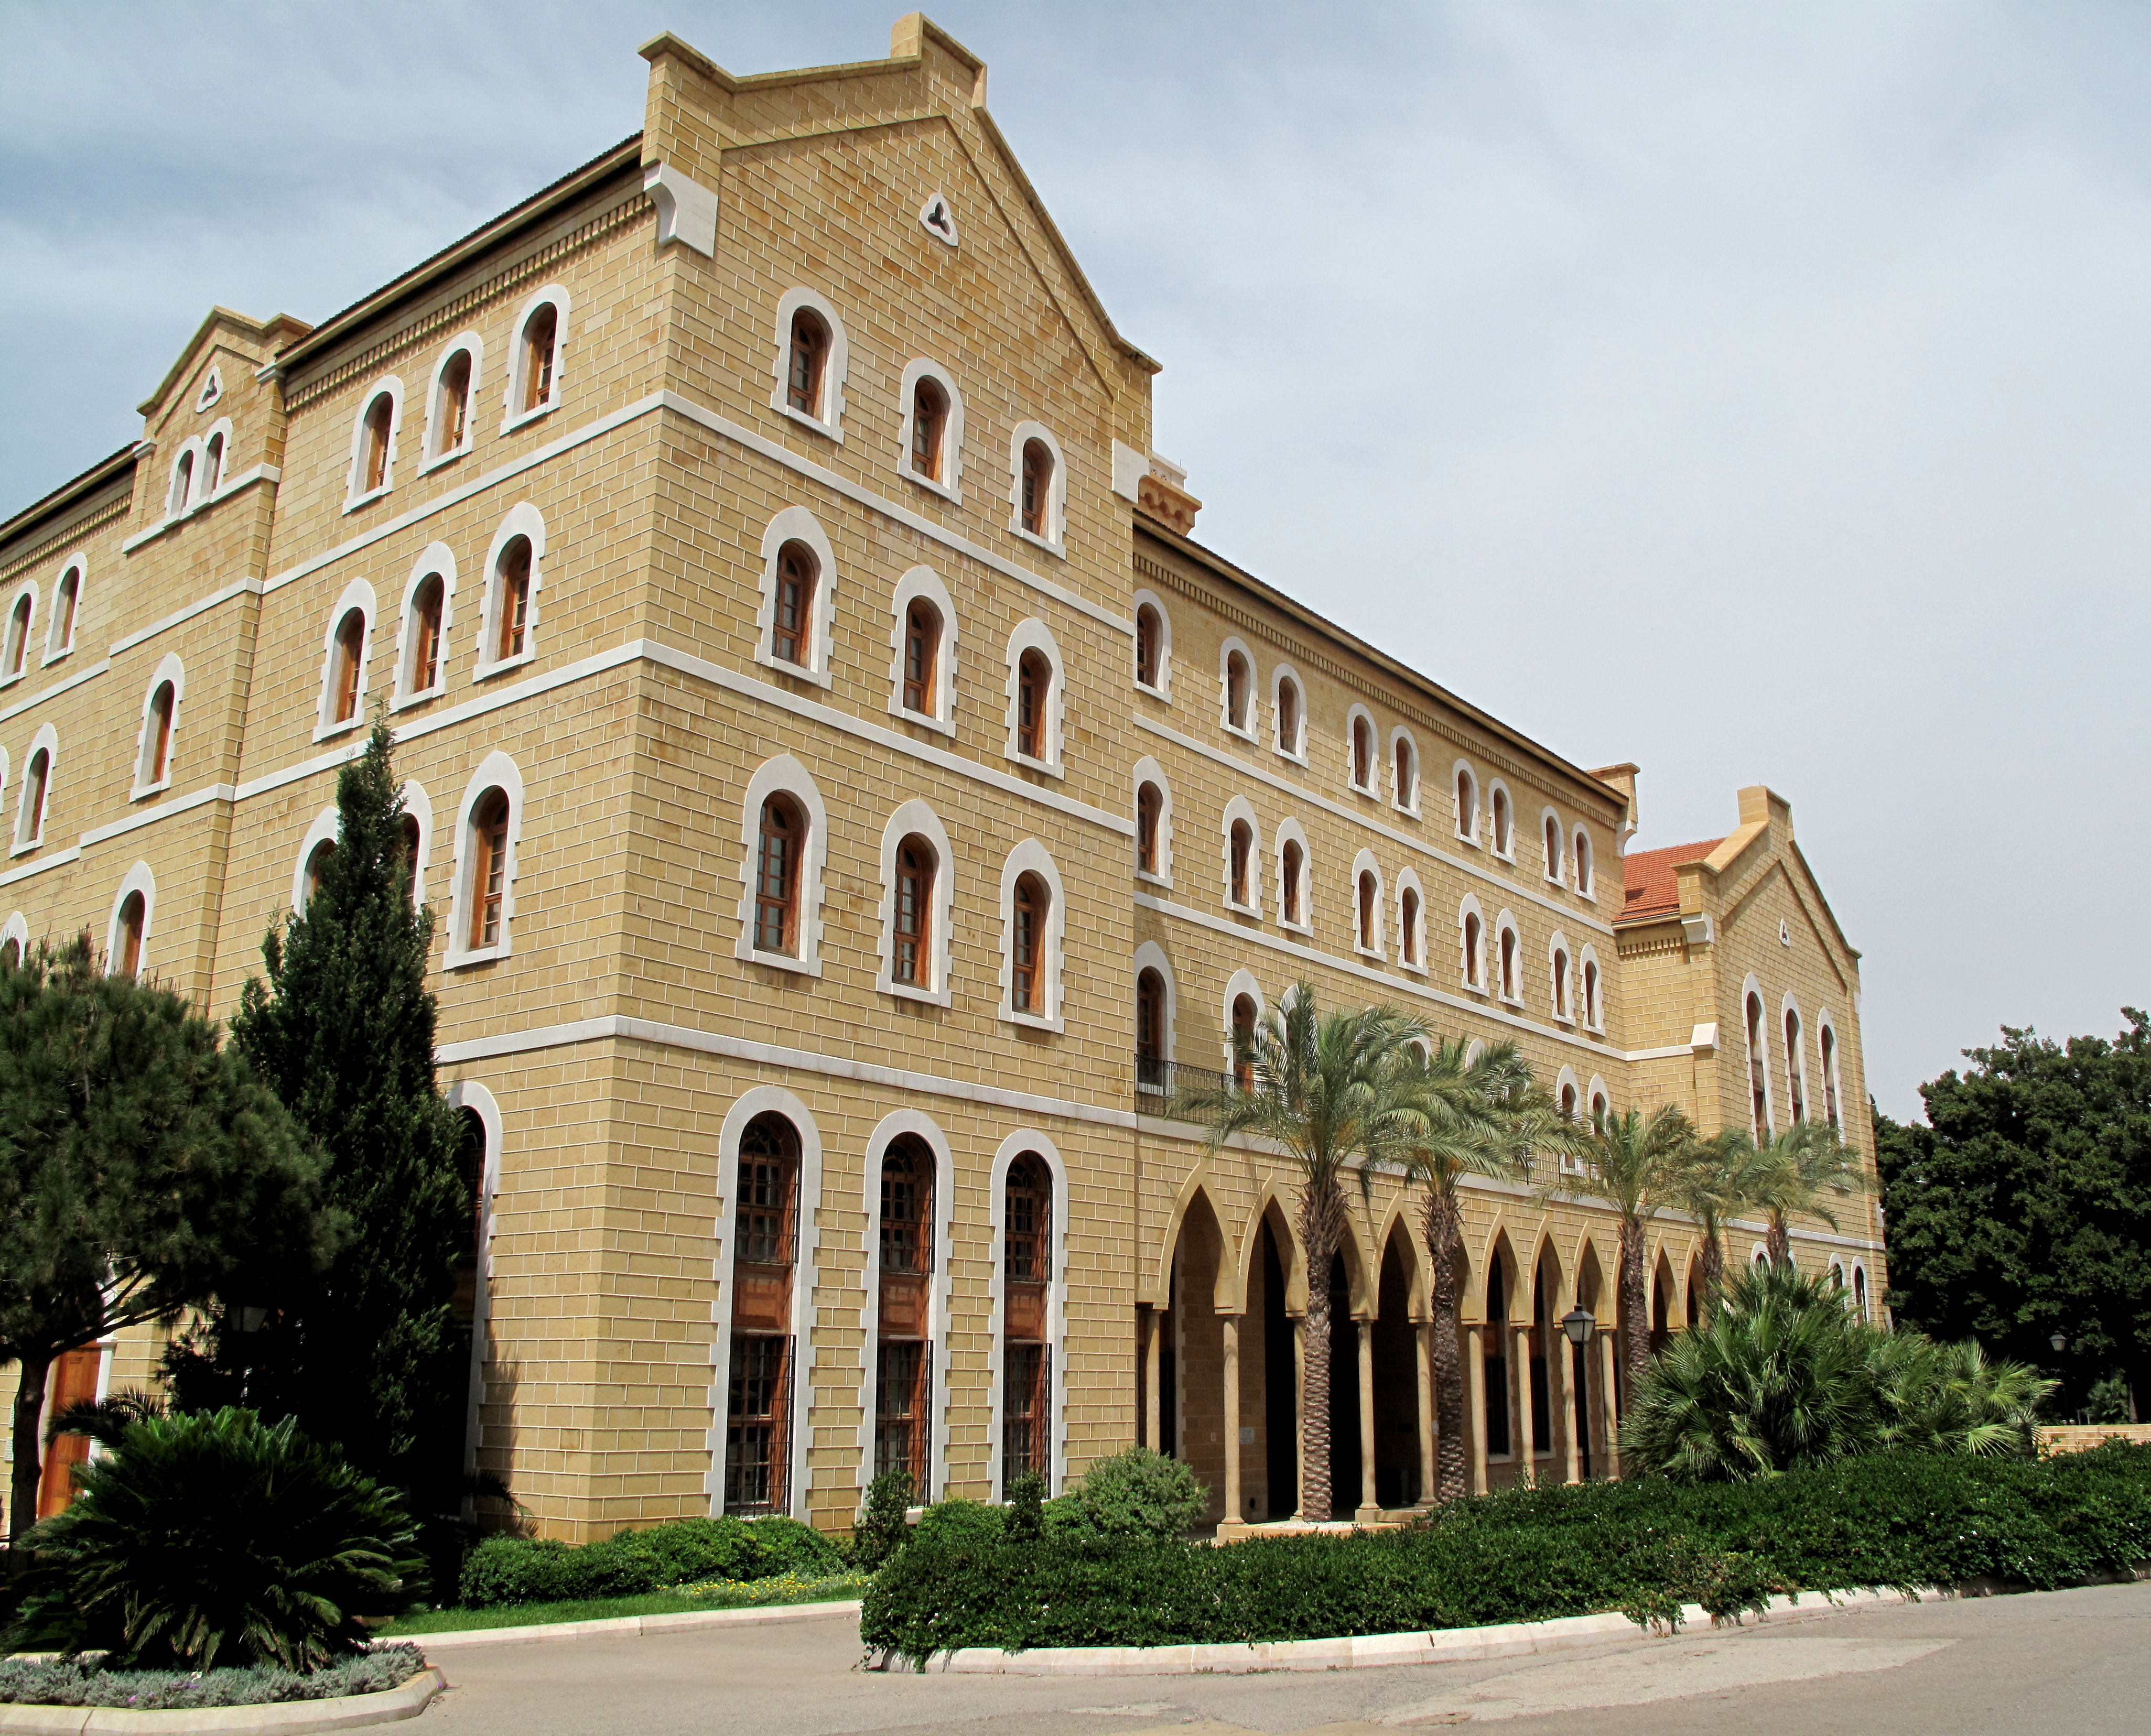 American University of Beirut campus building